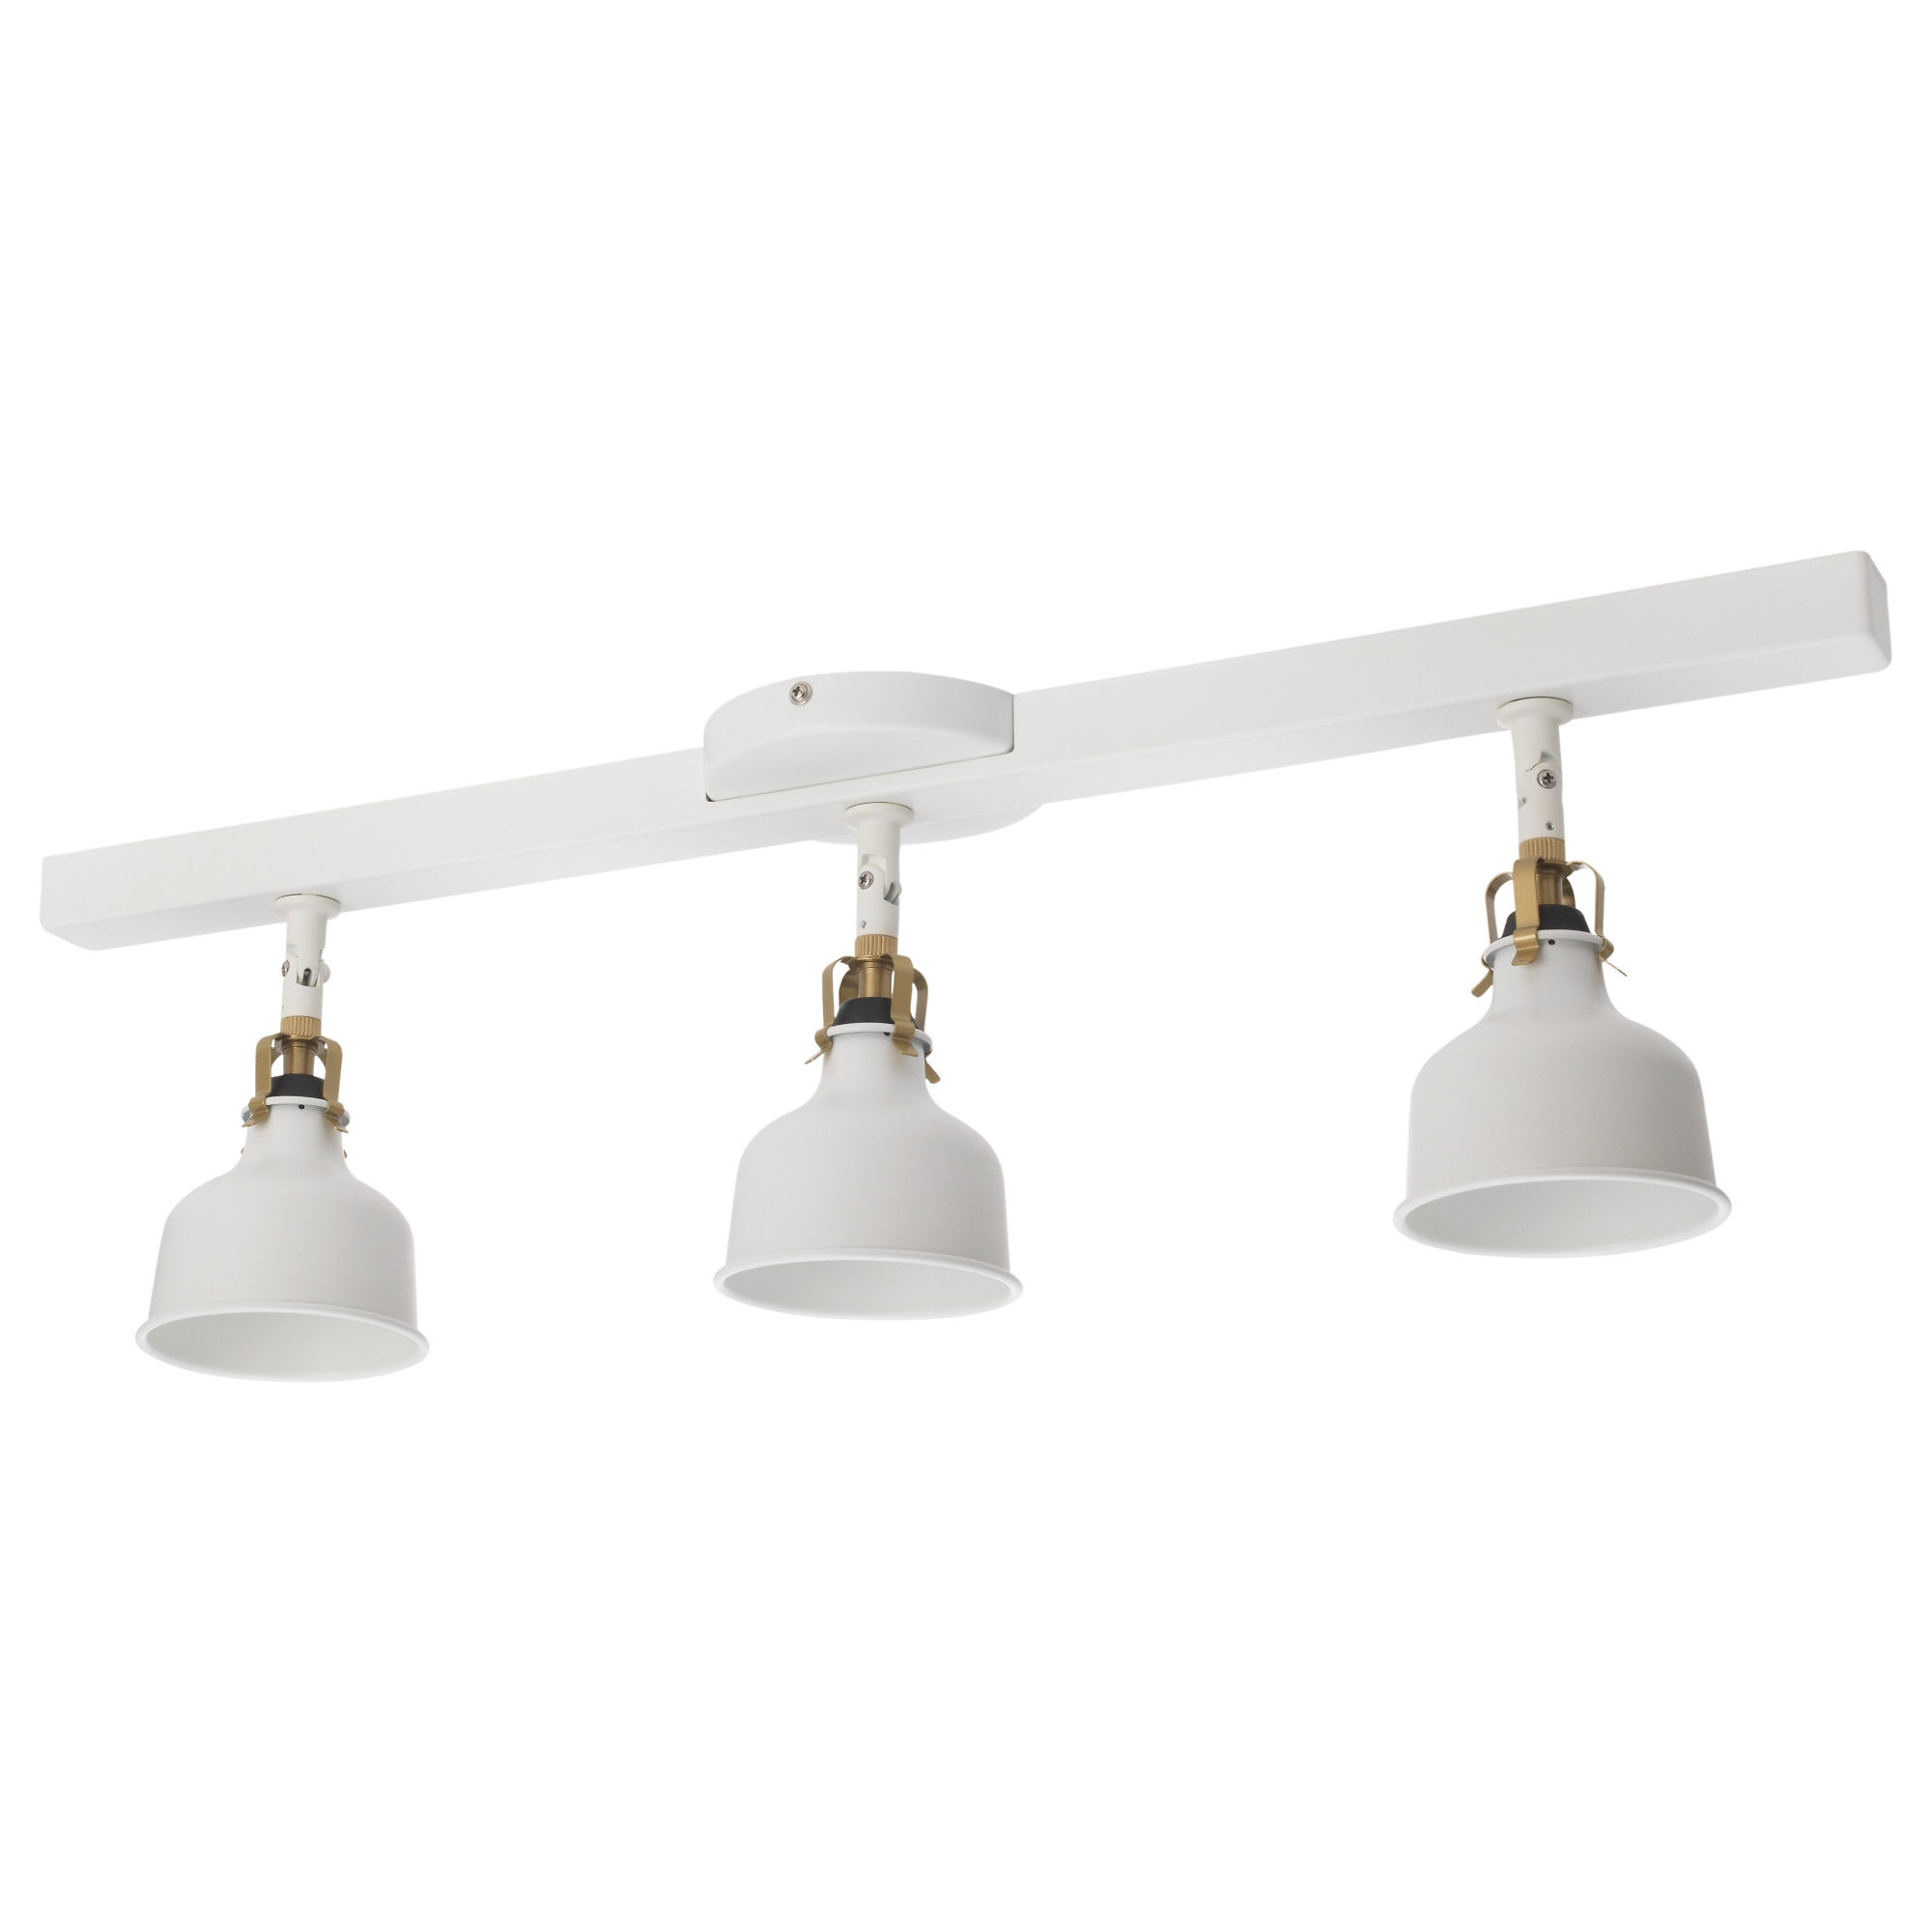 track lighting ceiling. ranarp ceiling track 3 spotlights offwhite white length 29 lighting e